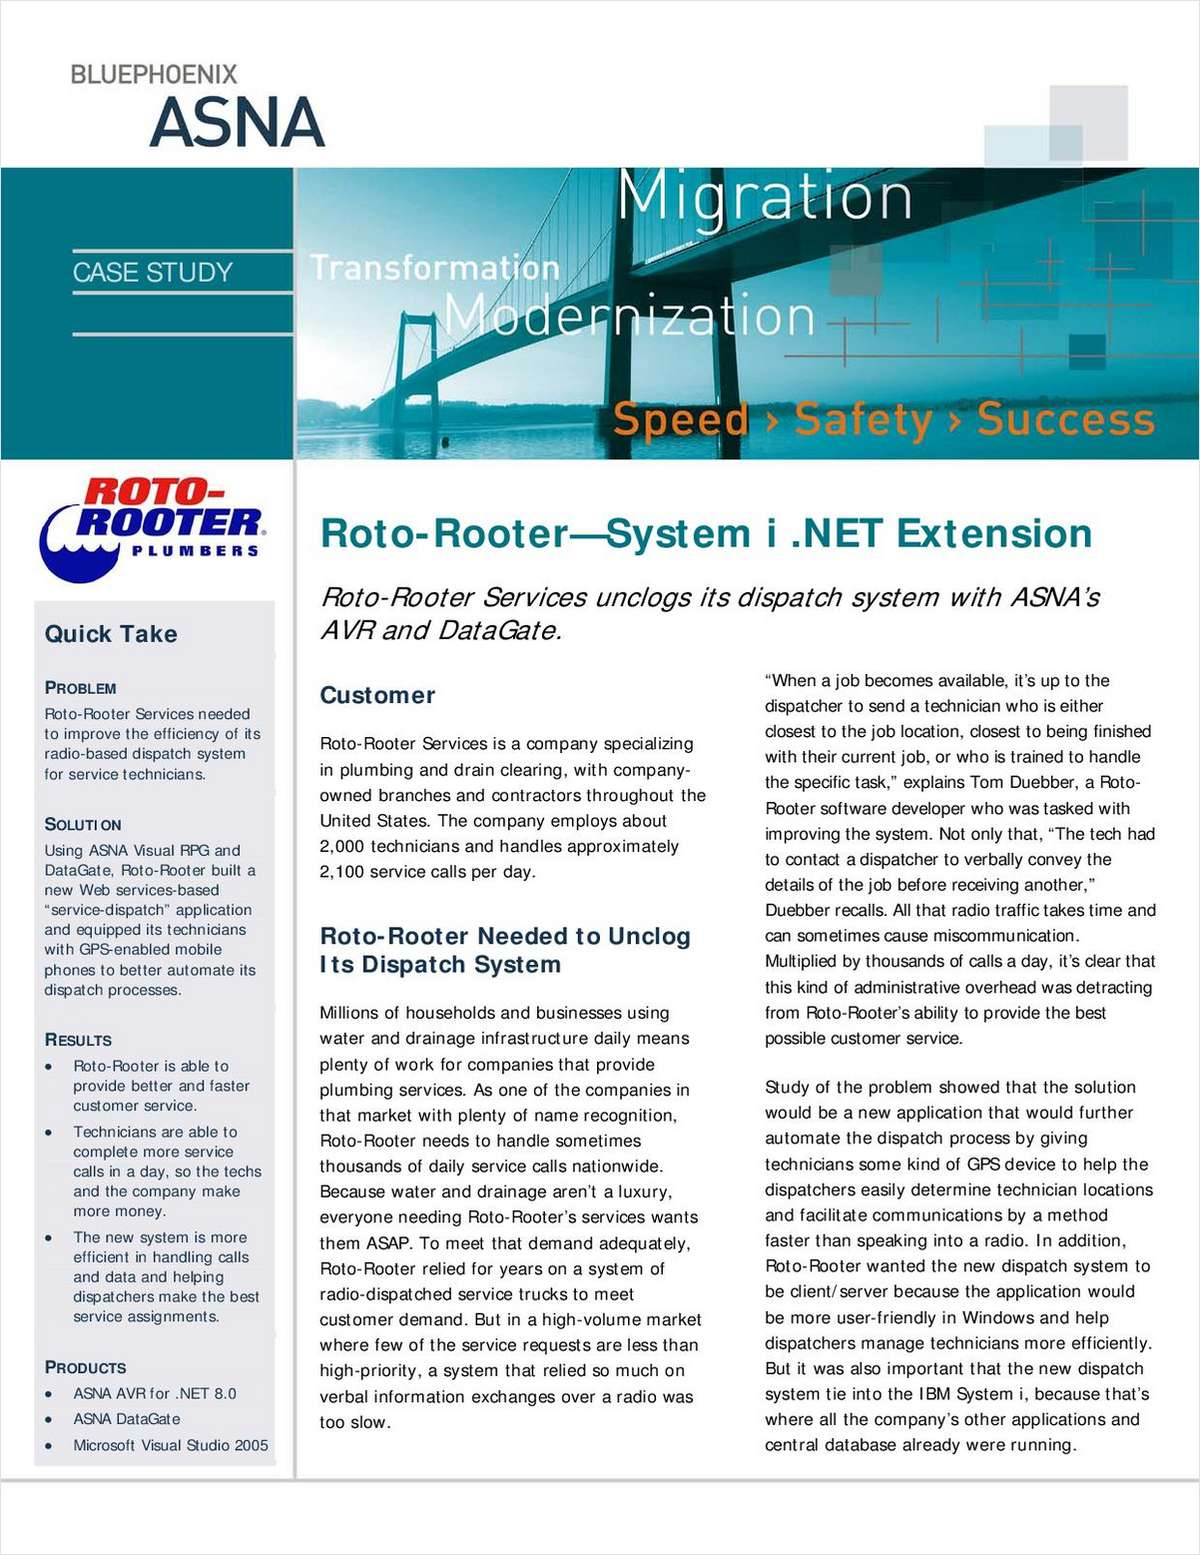 Case Study: Roto-Rooter Unclogs its Dispatch System with System i .Net Extension